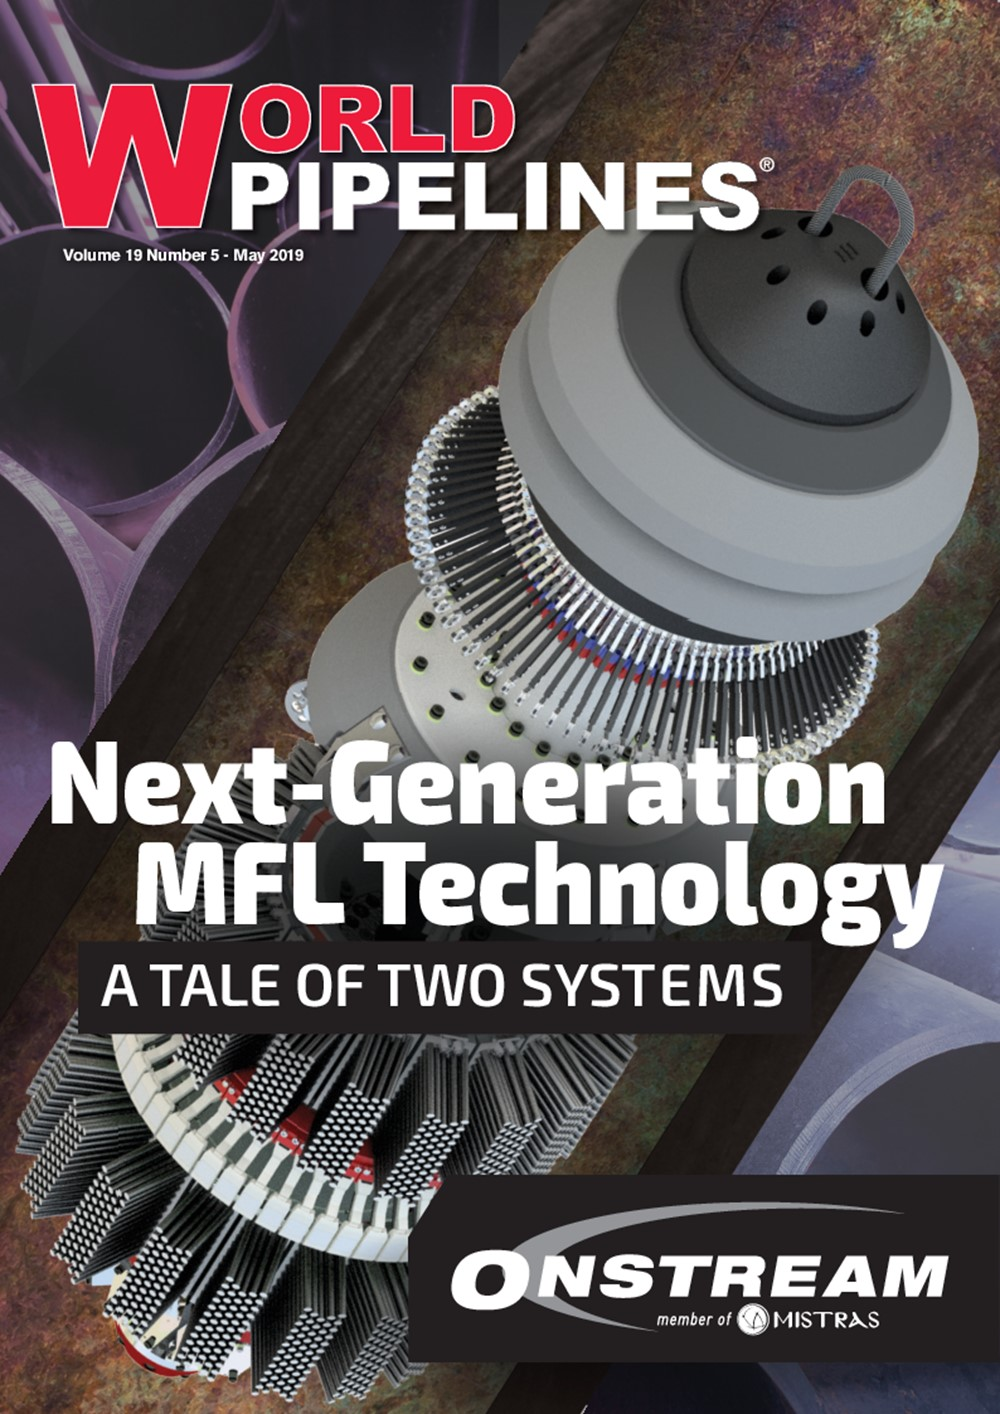 Next-Generation MFL Technology: A Tale of Two Systems